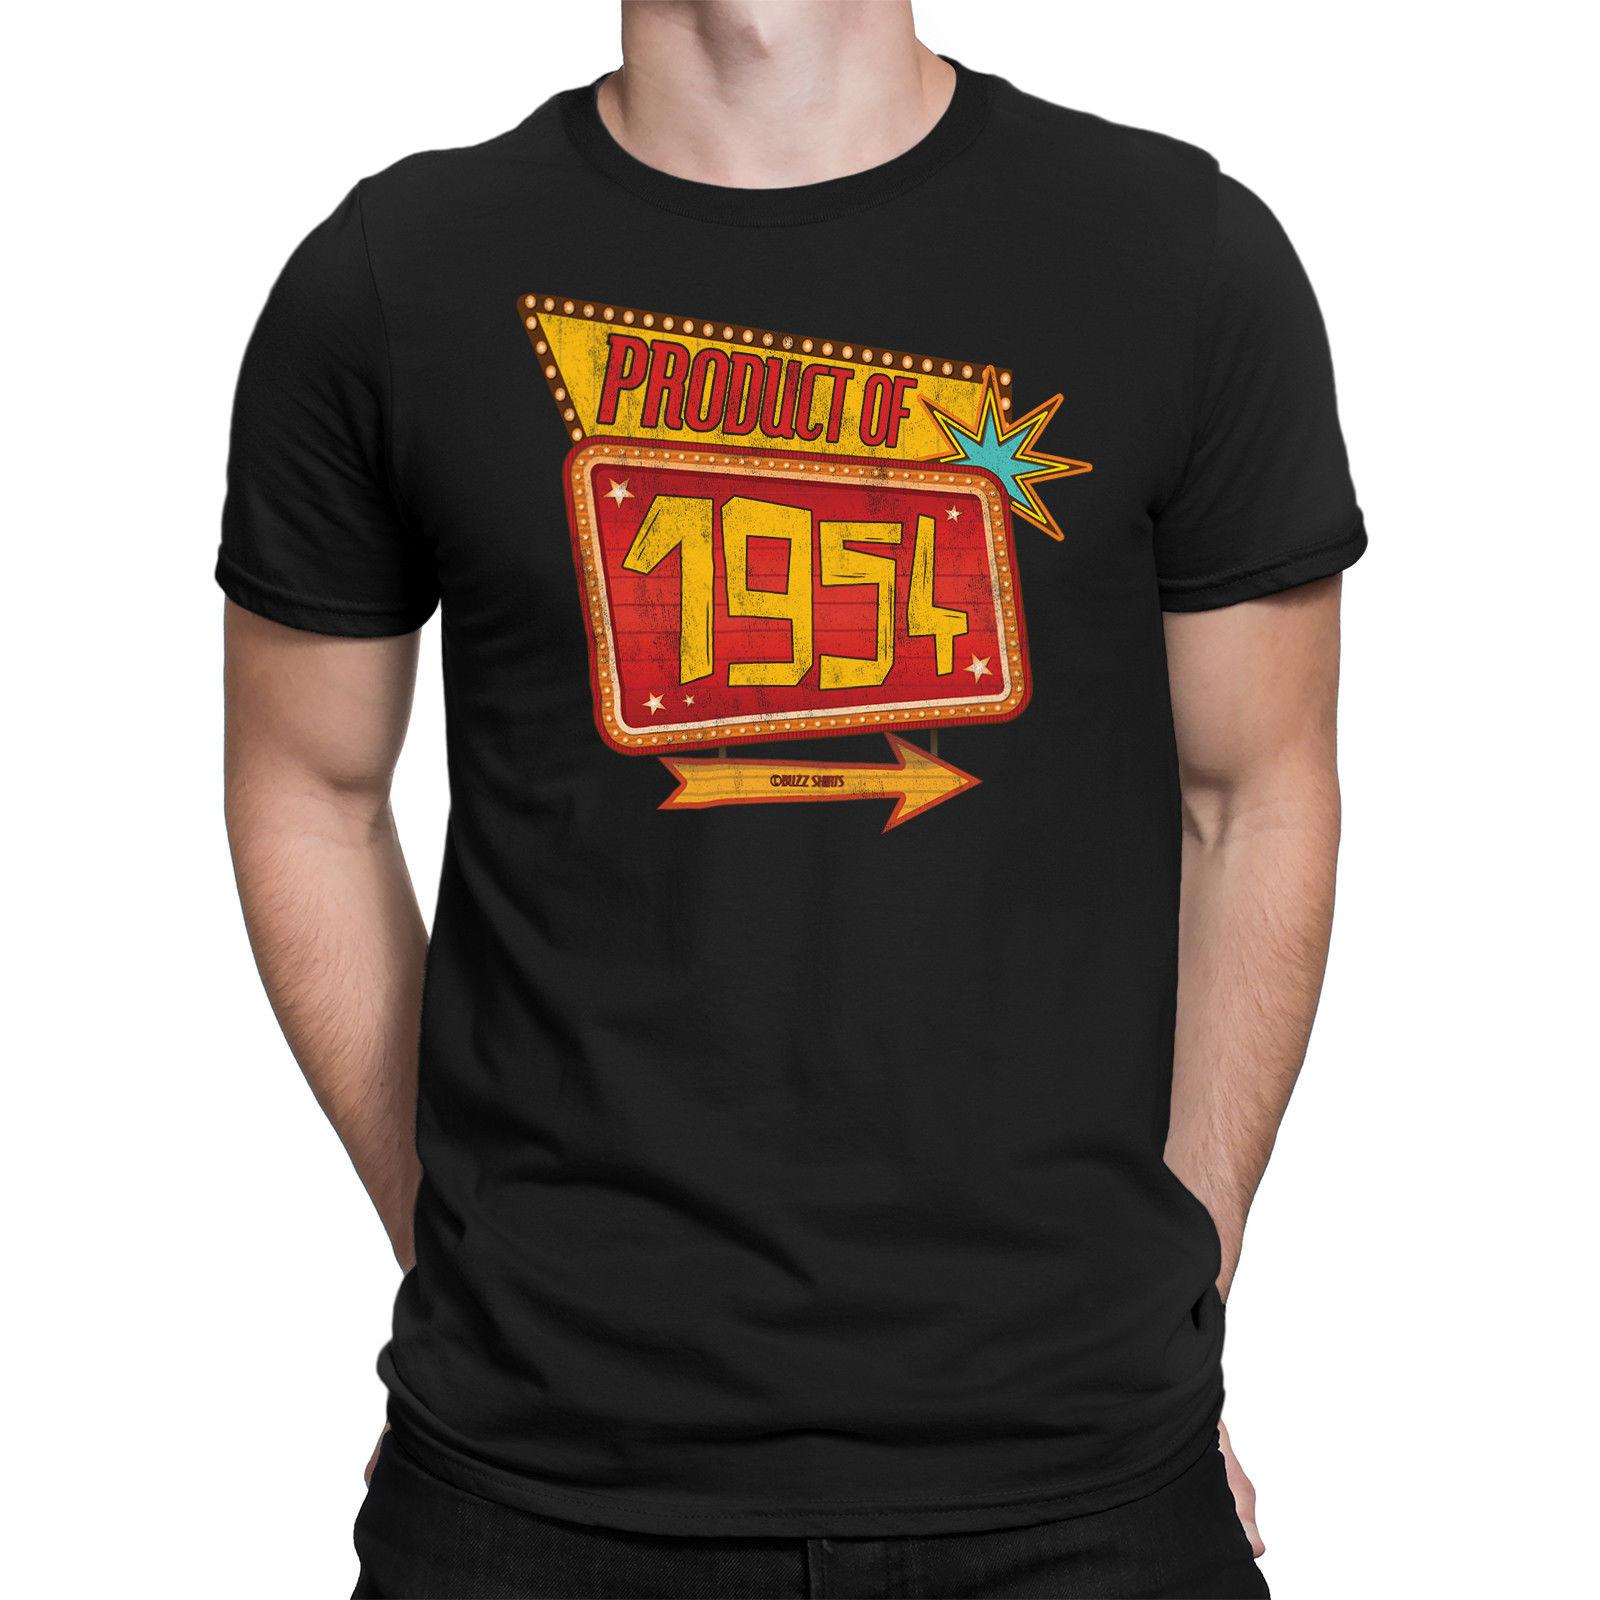 Product Of 1954 Mens 34th Birthday T Shirt 50s Fifties Retro Mans Awesome Tee Designs Shirts From Rutmerch 1101